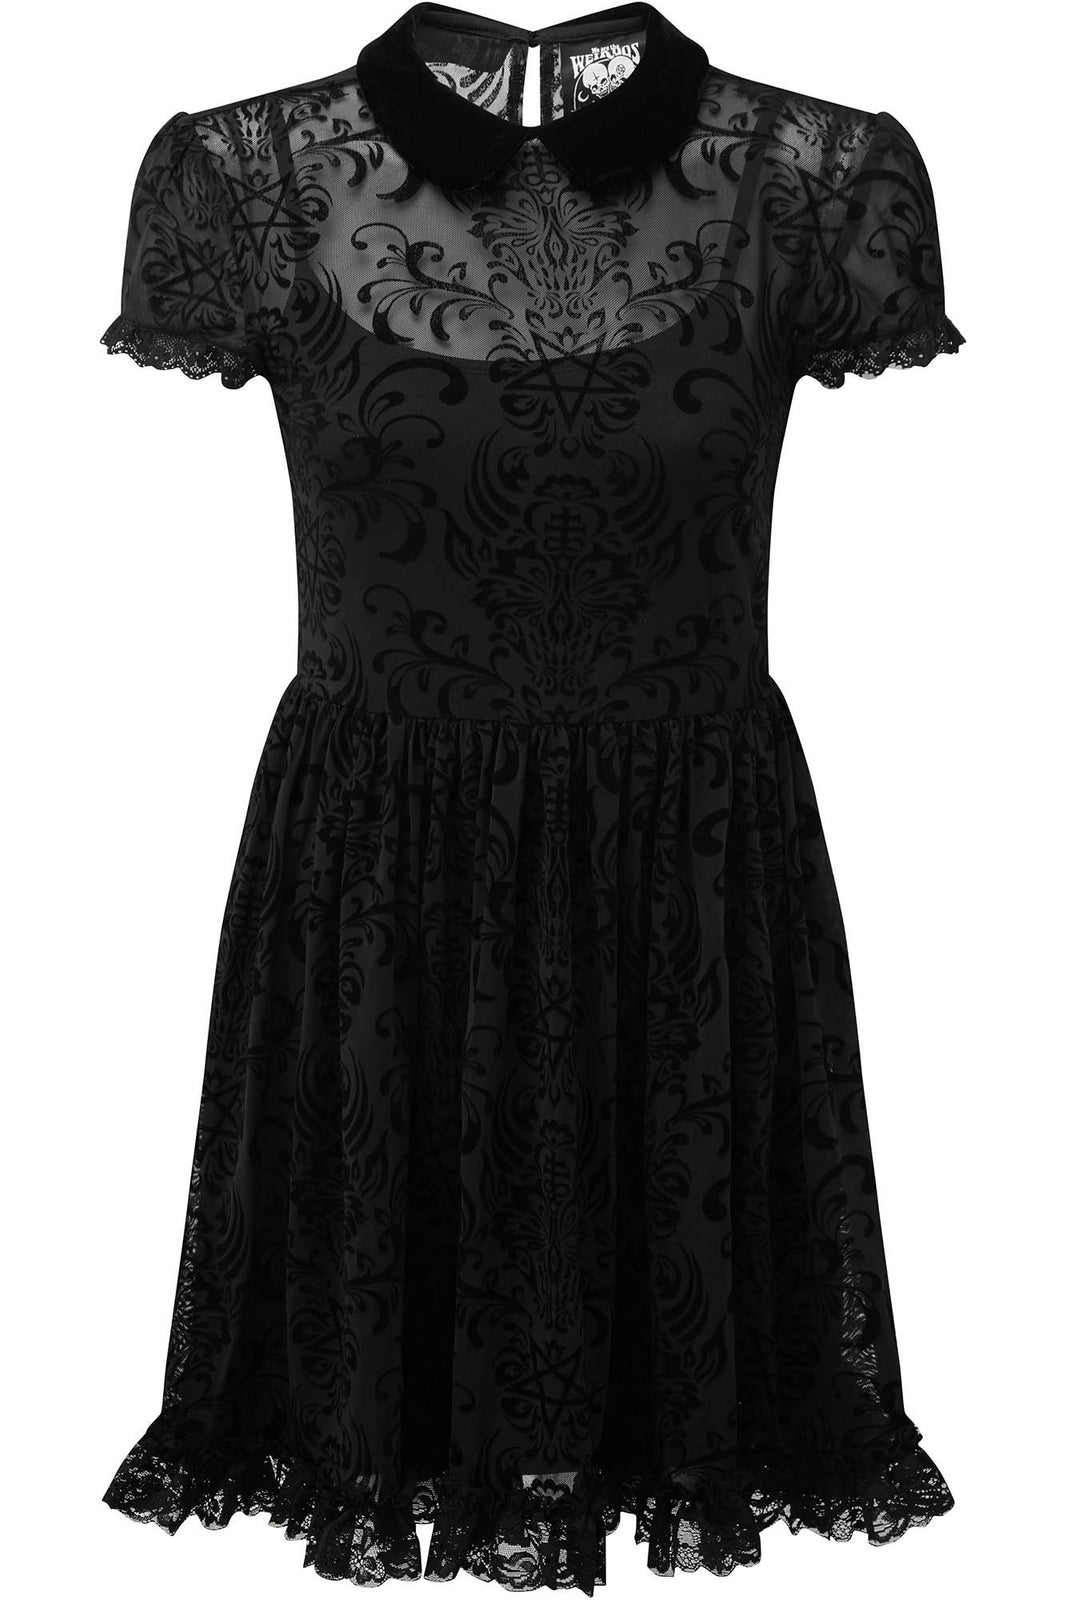 Bathory Babydoll Dress